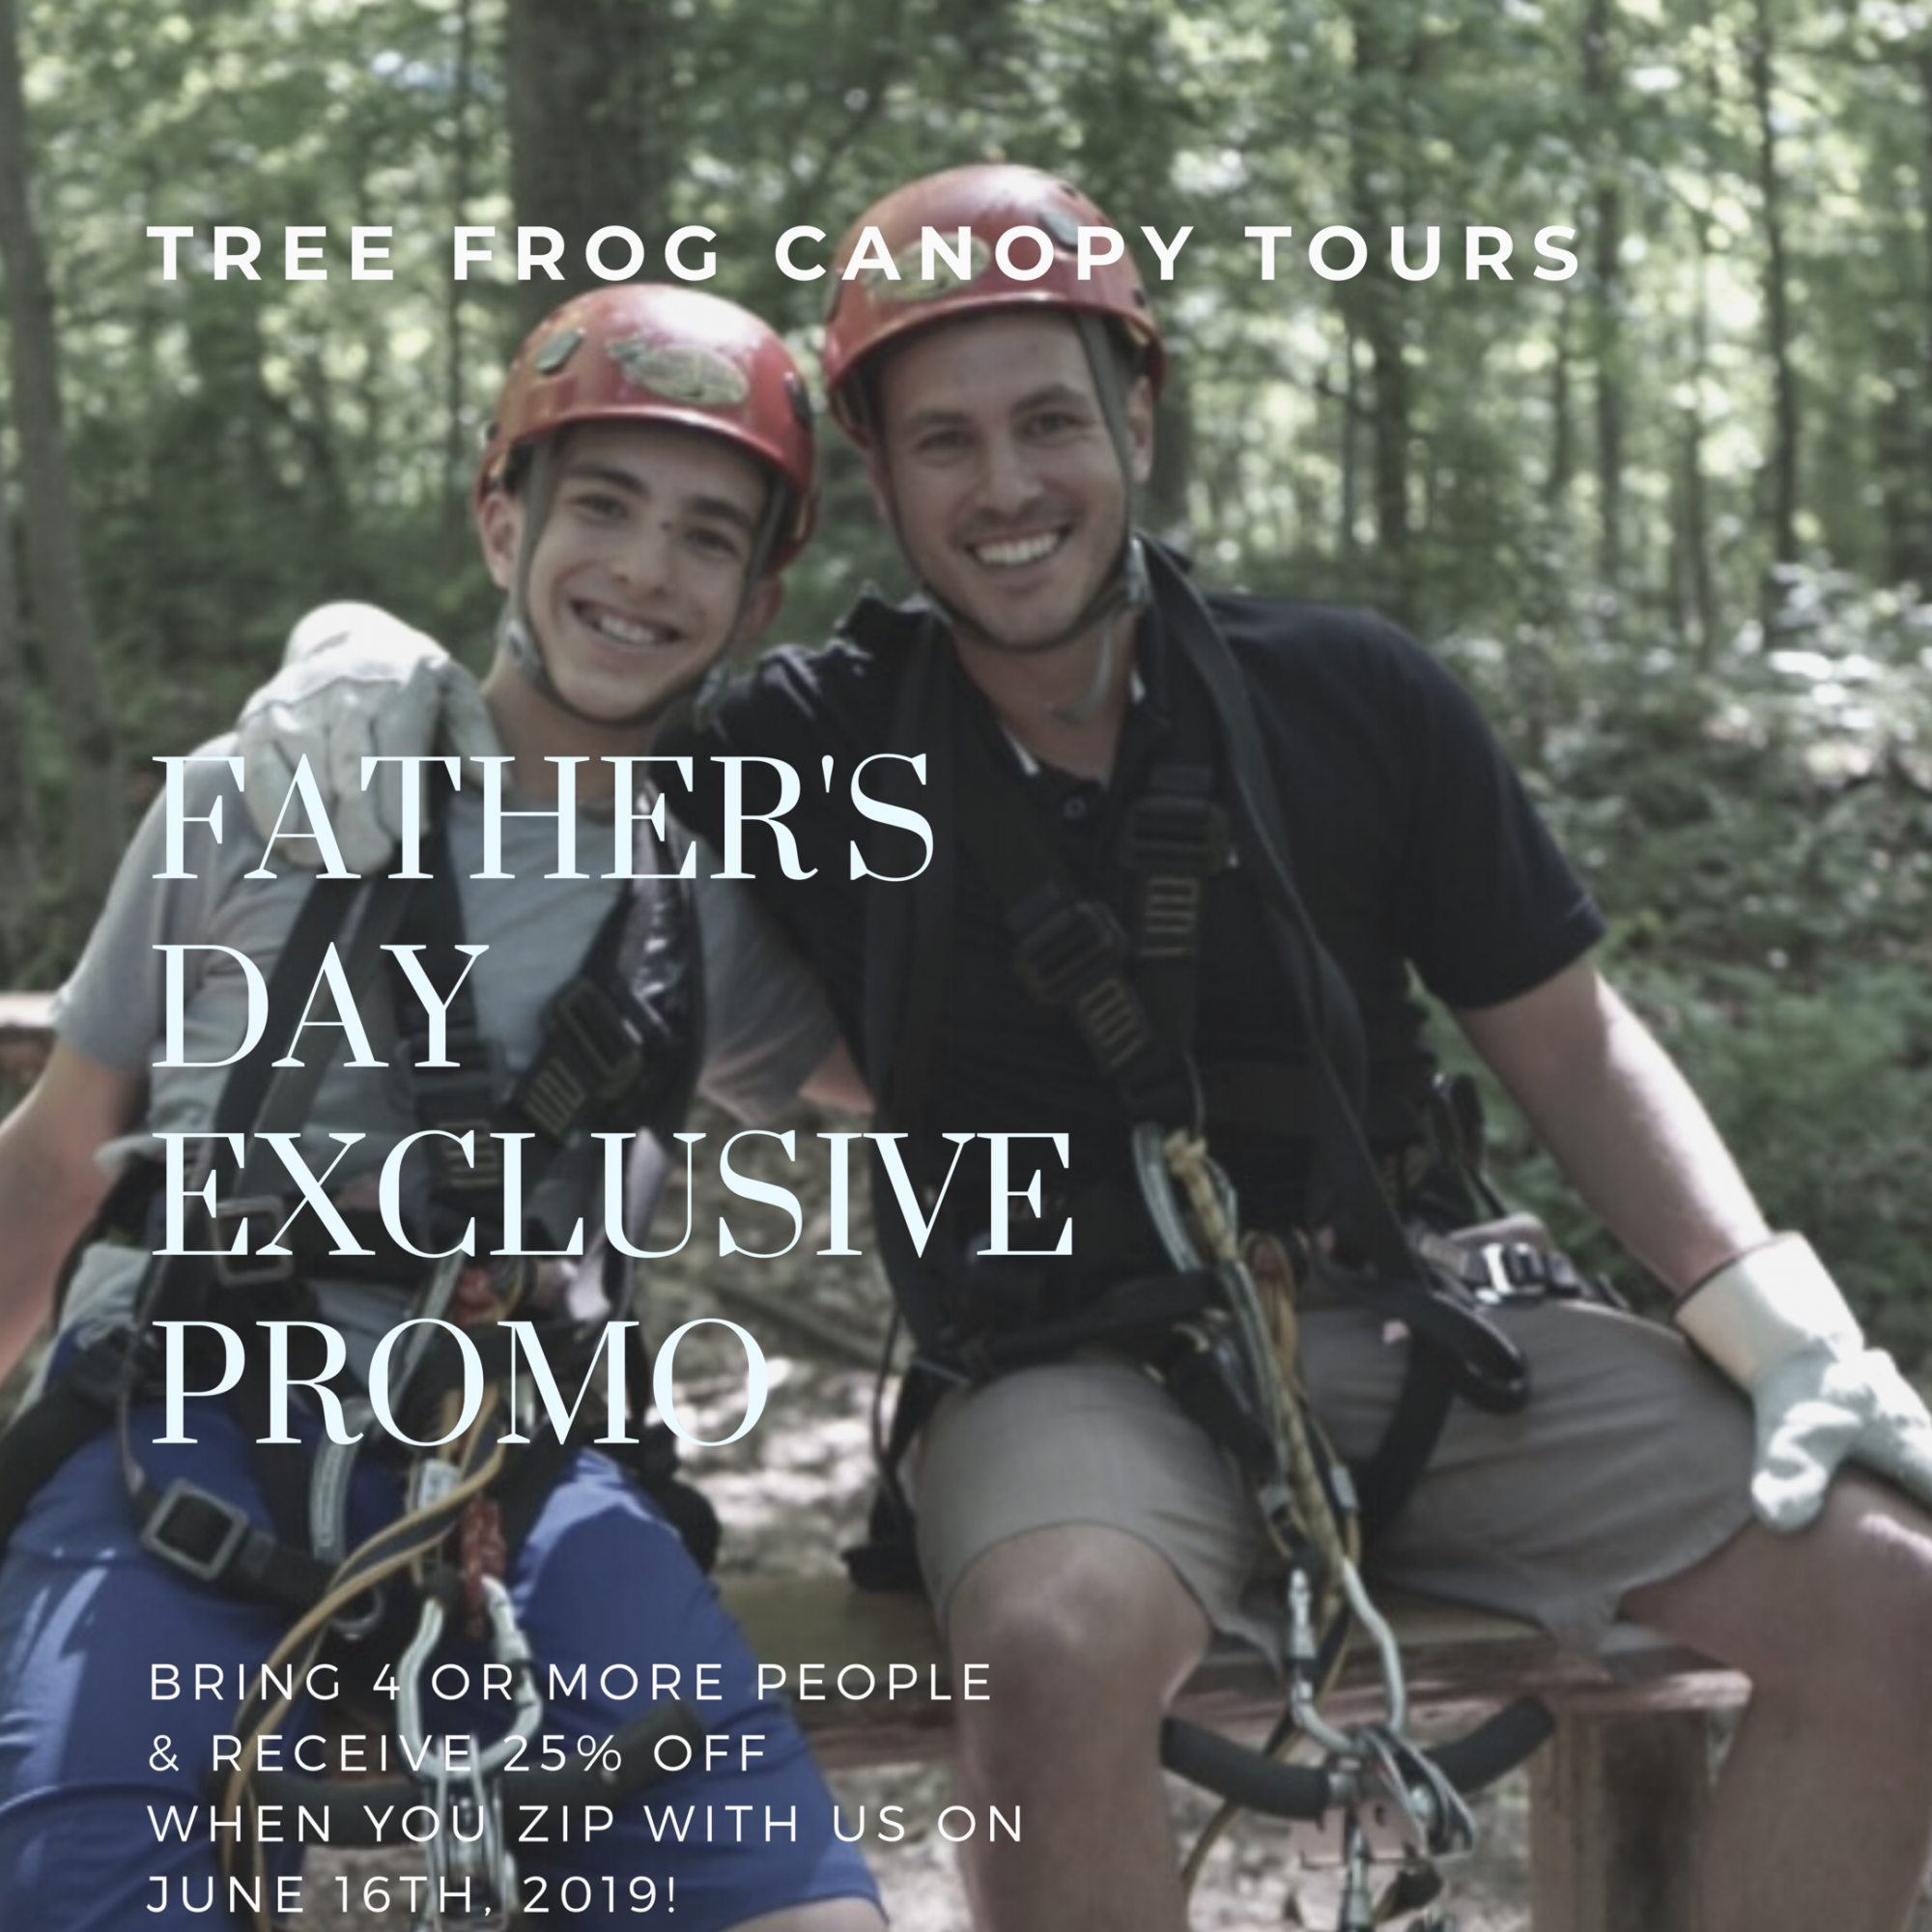 Save 25% on Father's Day with a group of 4 or more!